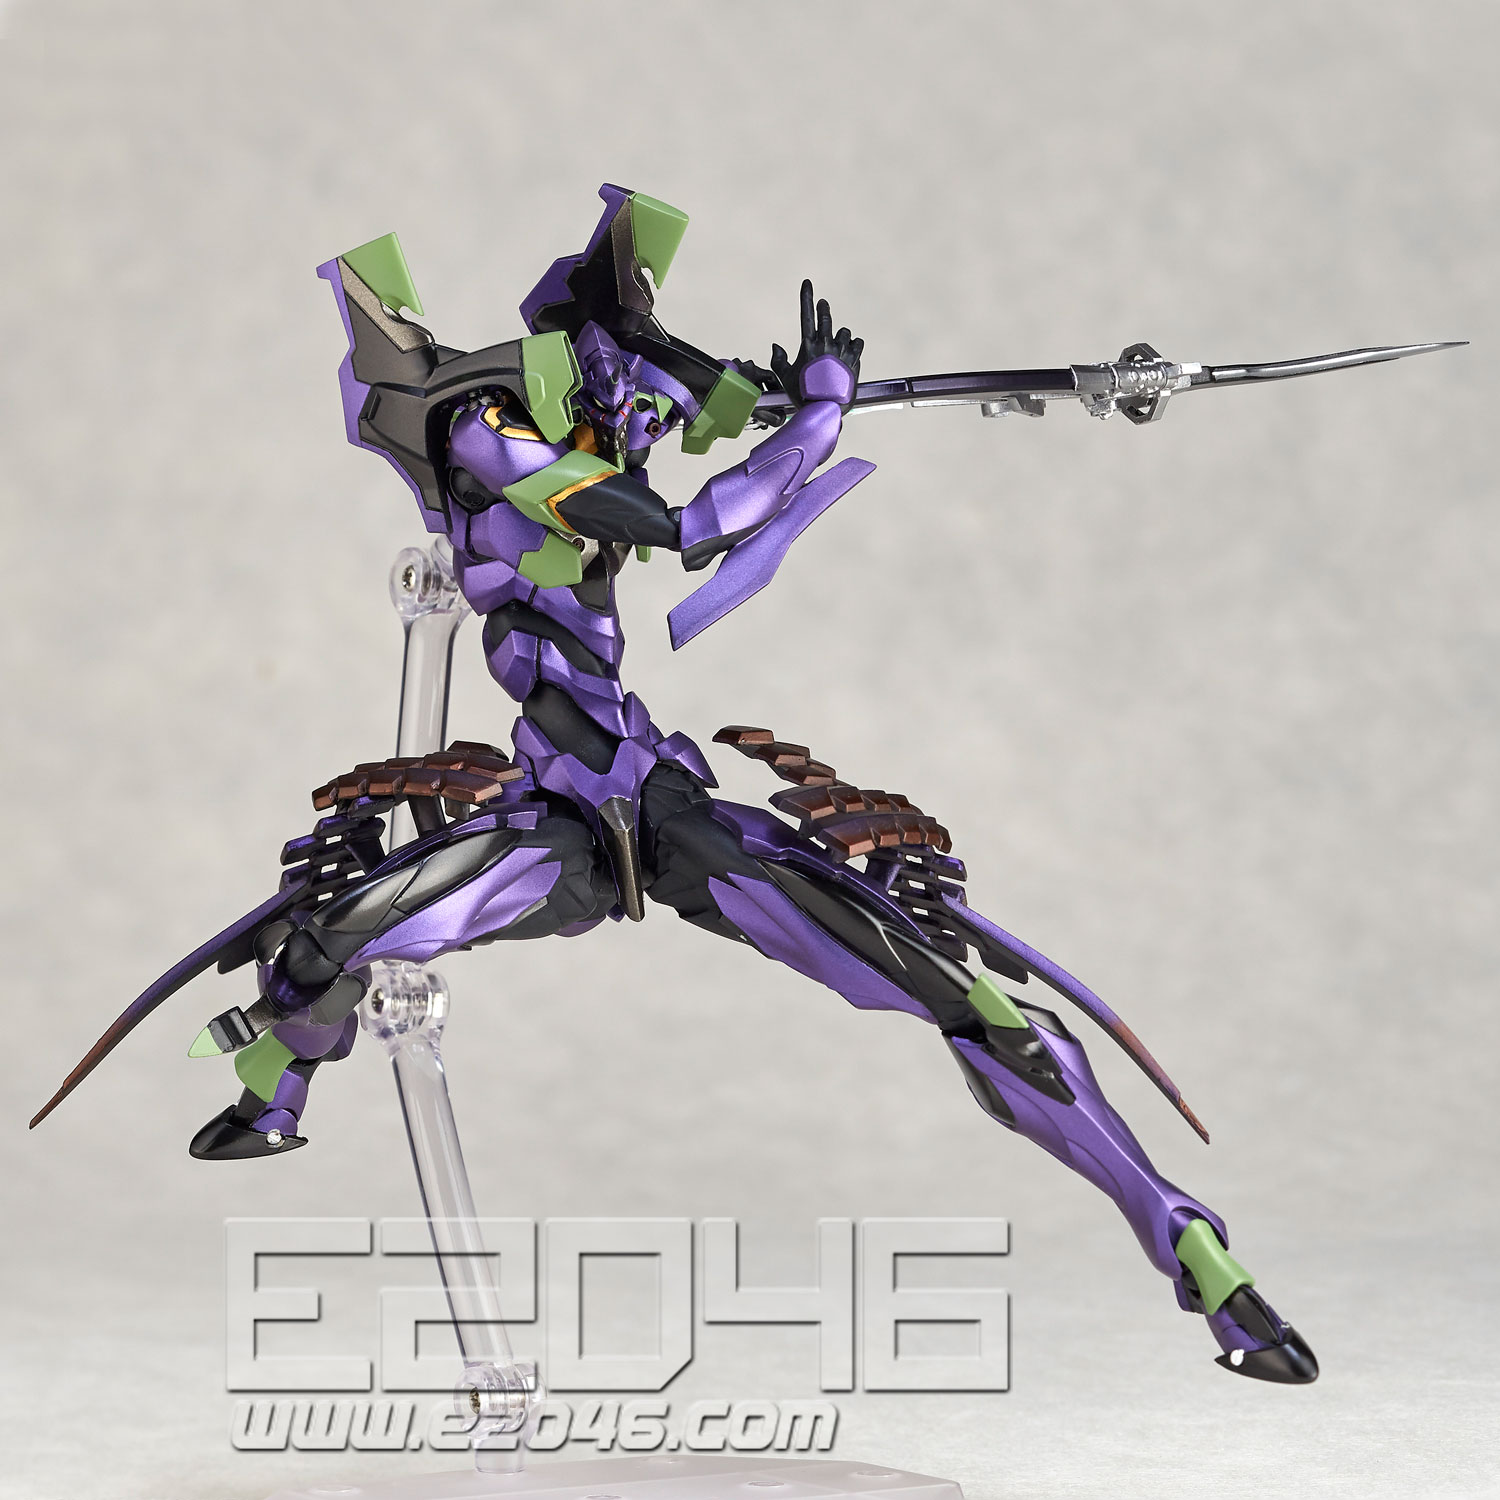 EVA-01 Natayanagi Version (PVC)